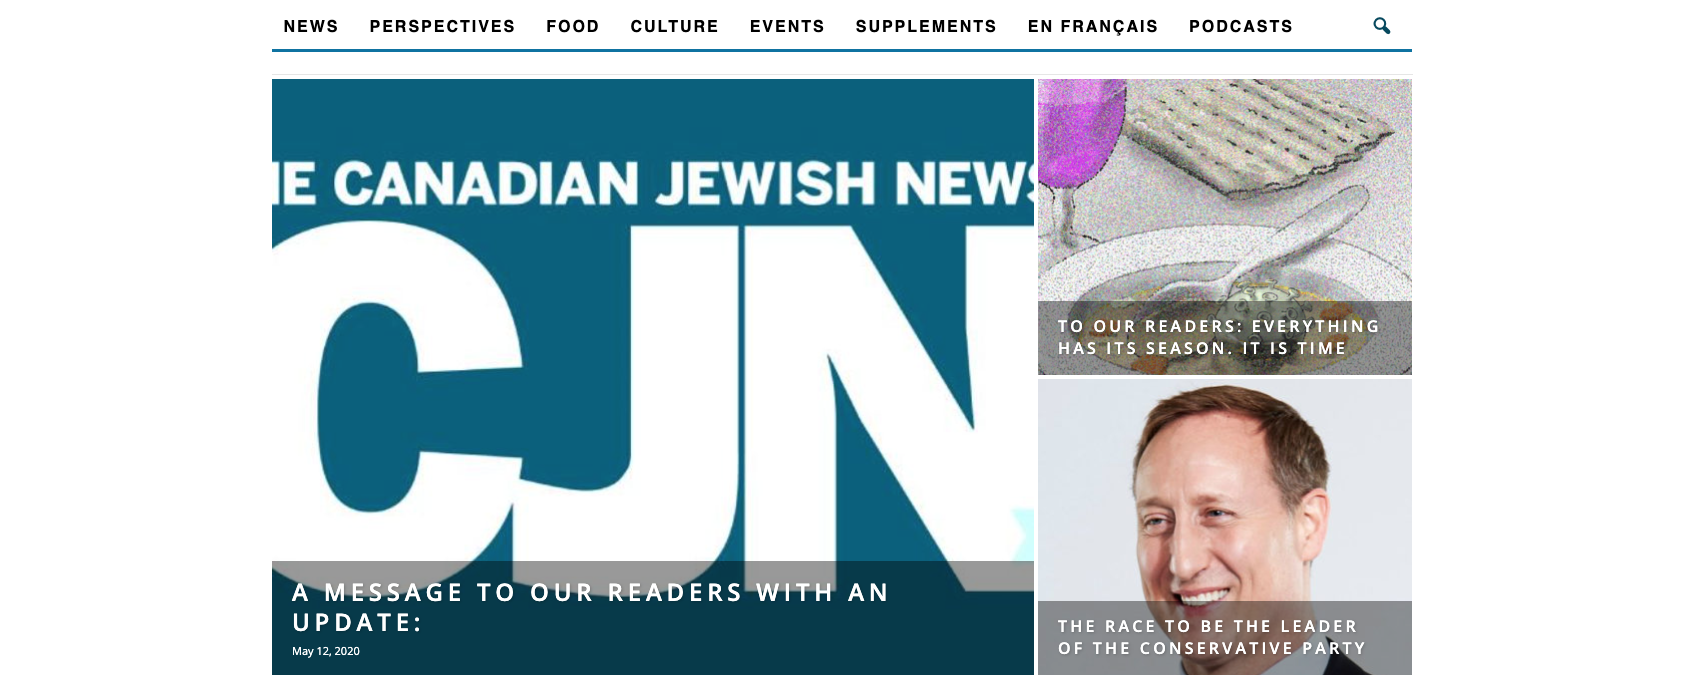 Screenshot of the Canadian Jewish News website, Dec. 15, 2020.